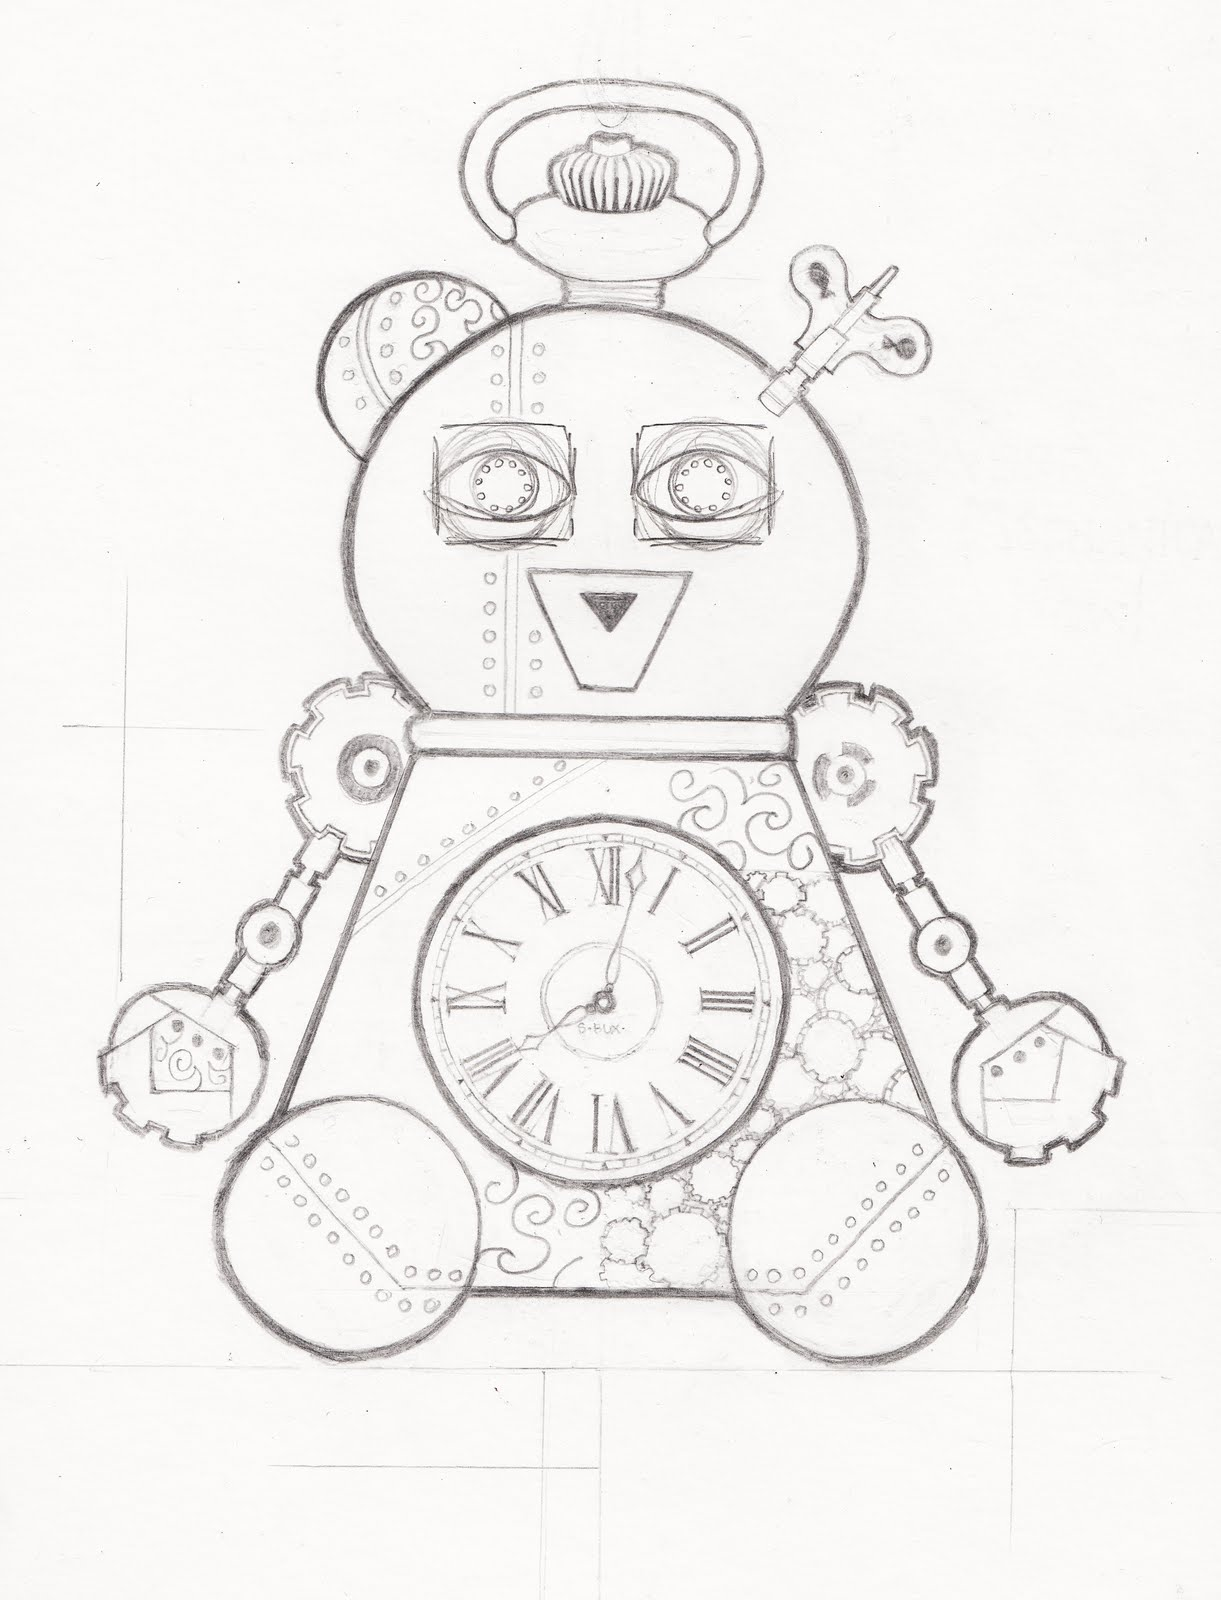 1221x1600 Pocket Watch Drawing Pocket Watch Grizzly ! And Tired Pocket